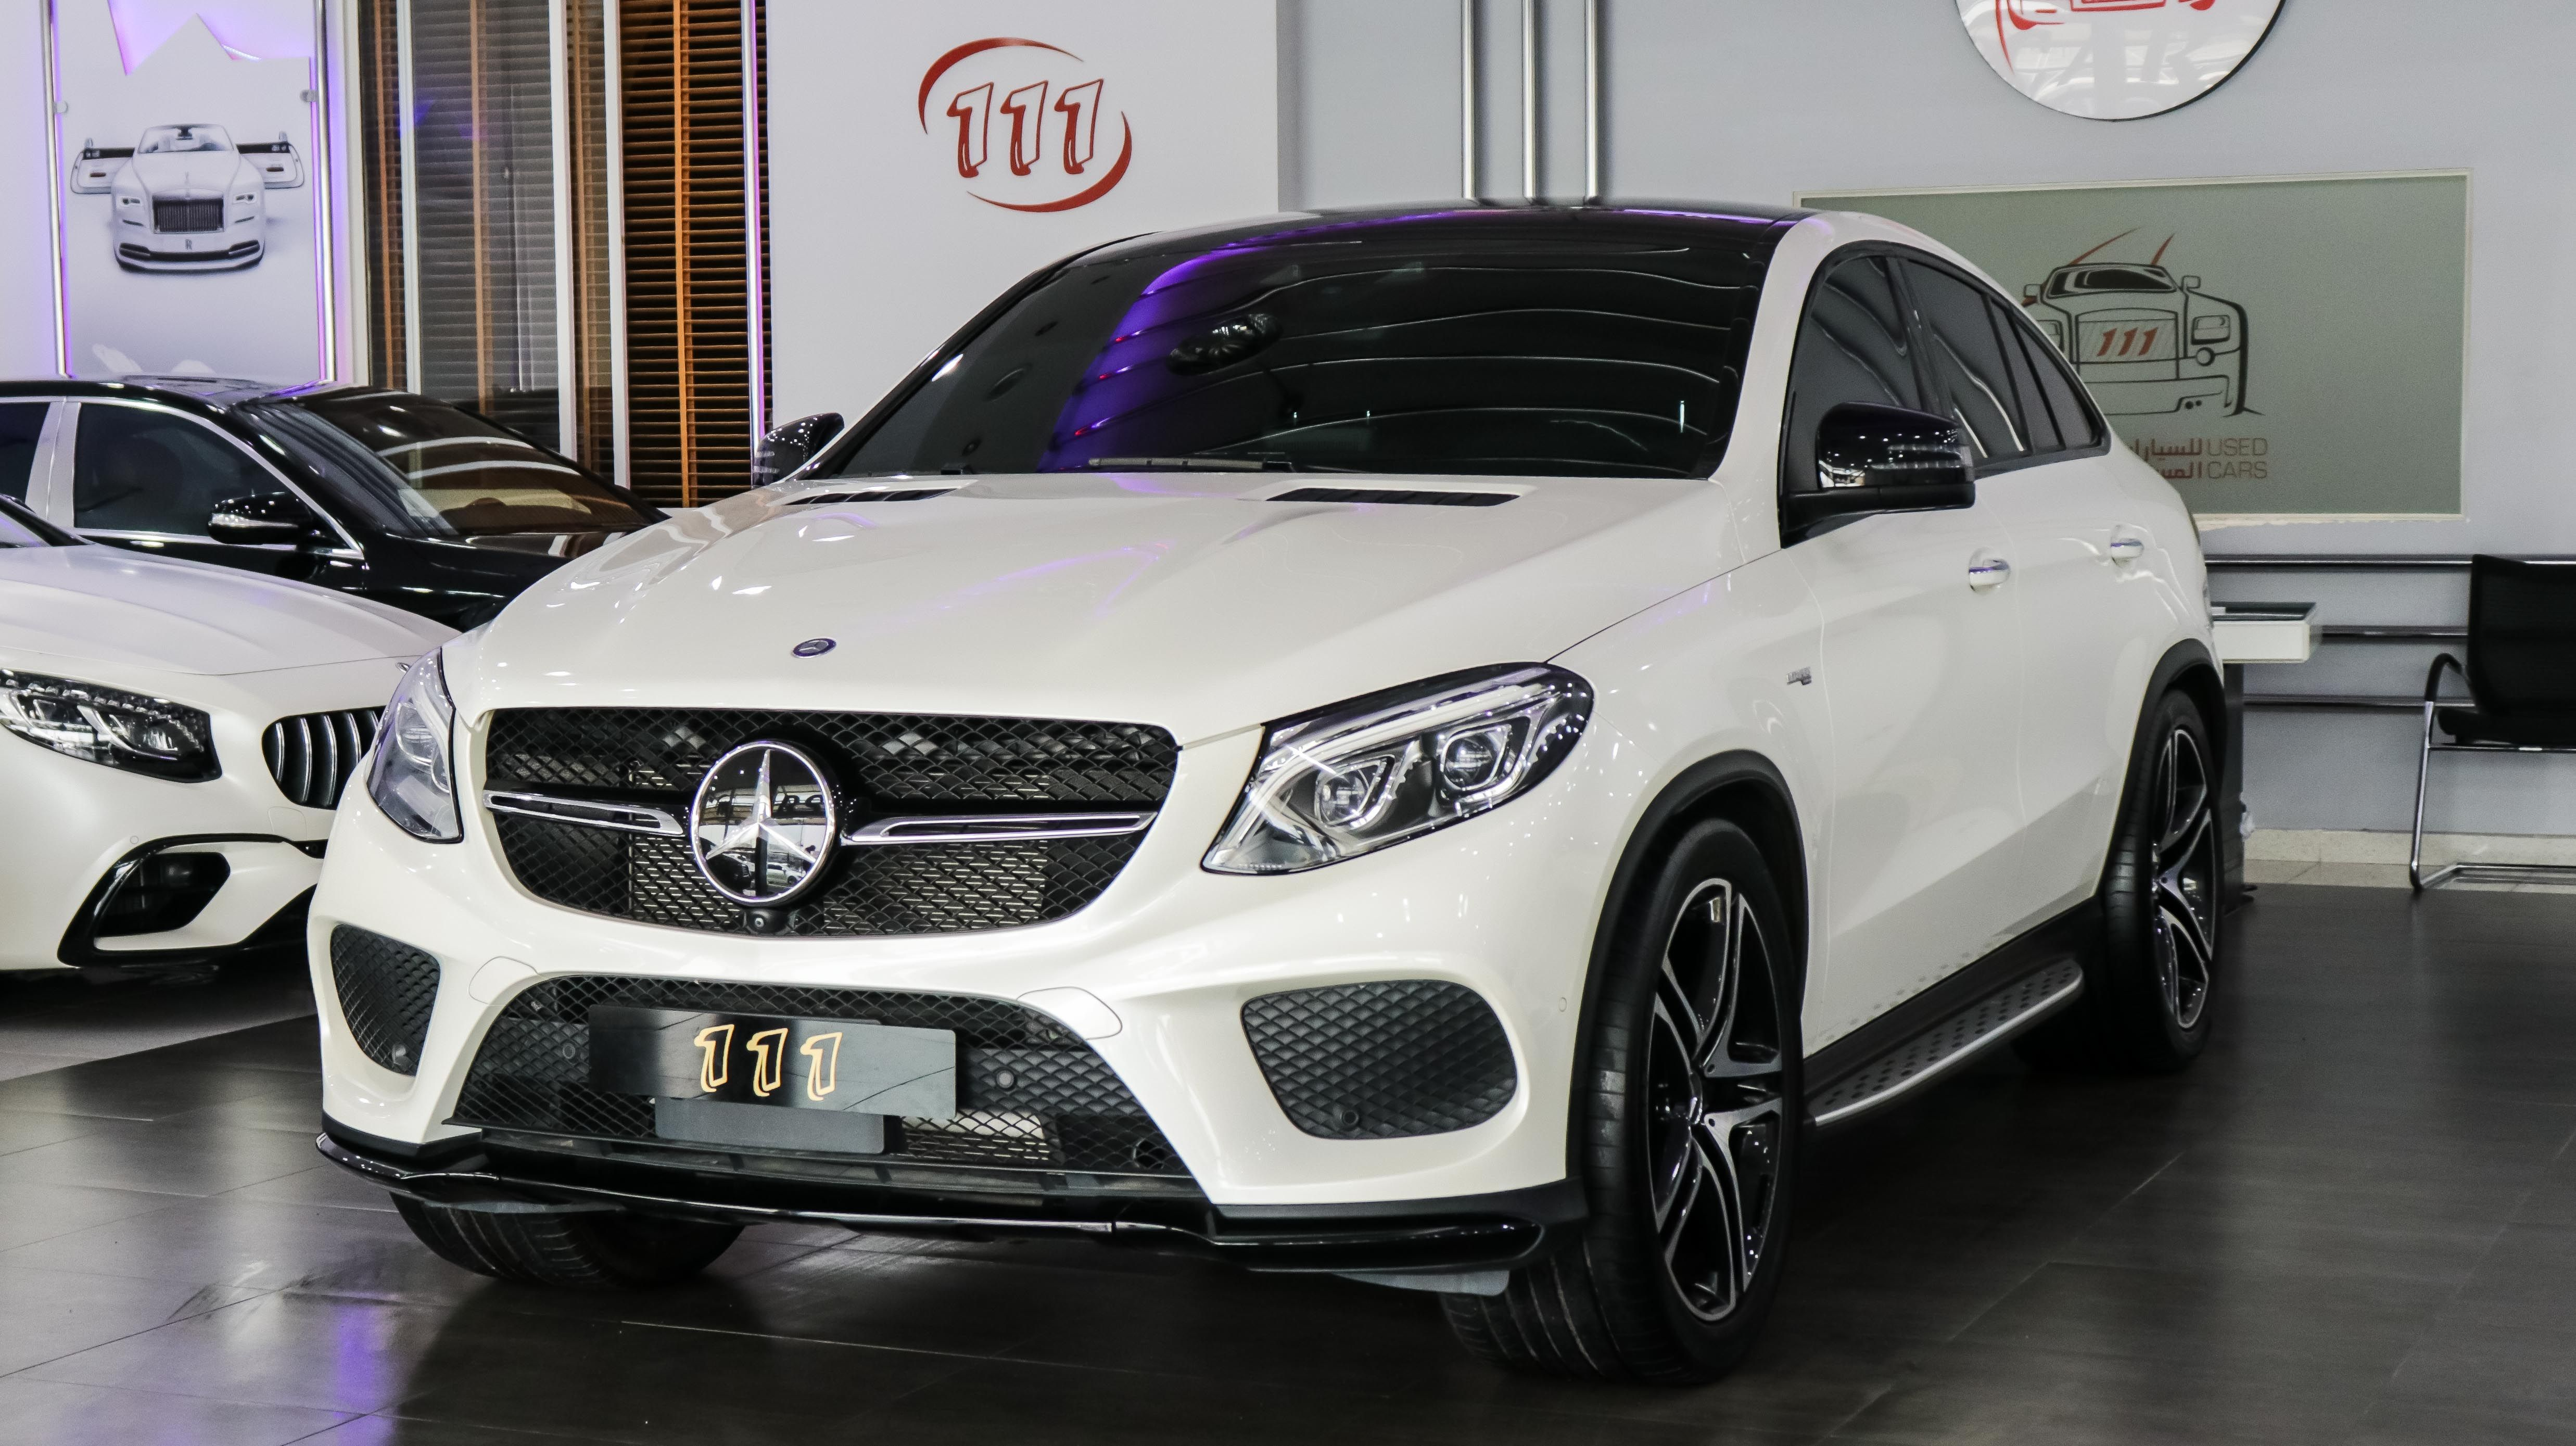 Model Mercedes Benz Gle 43 Amg Year 2018 Km 40 000 Price